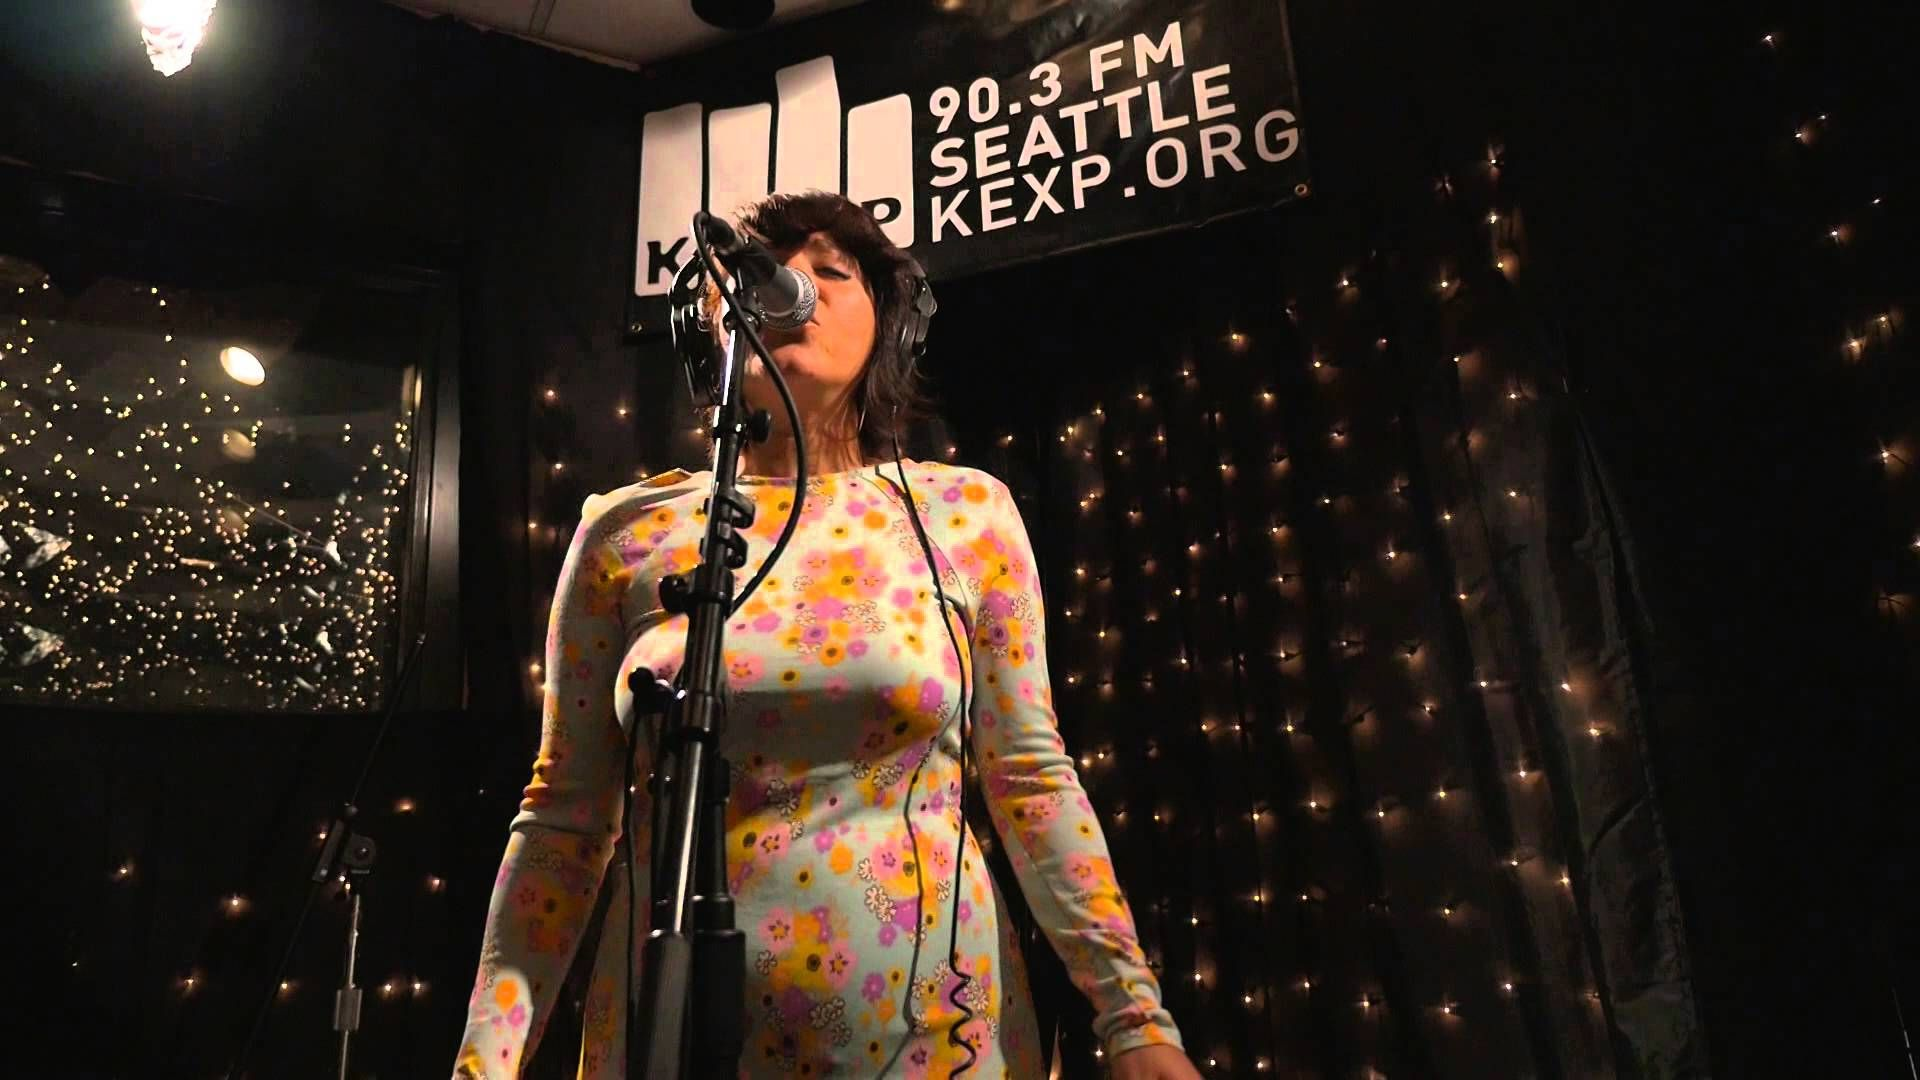 Elastic Bond - In Your Eyes (2013) (Live on KEXP)